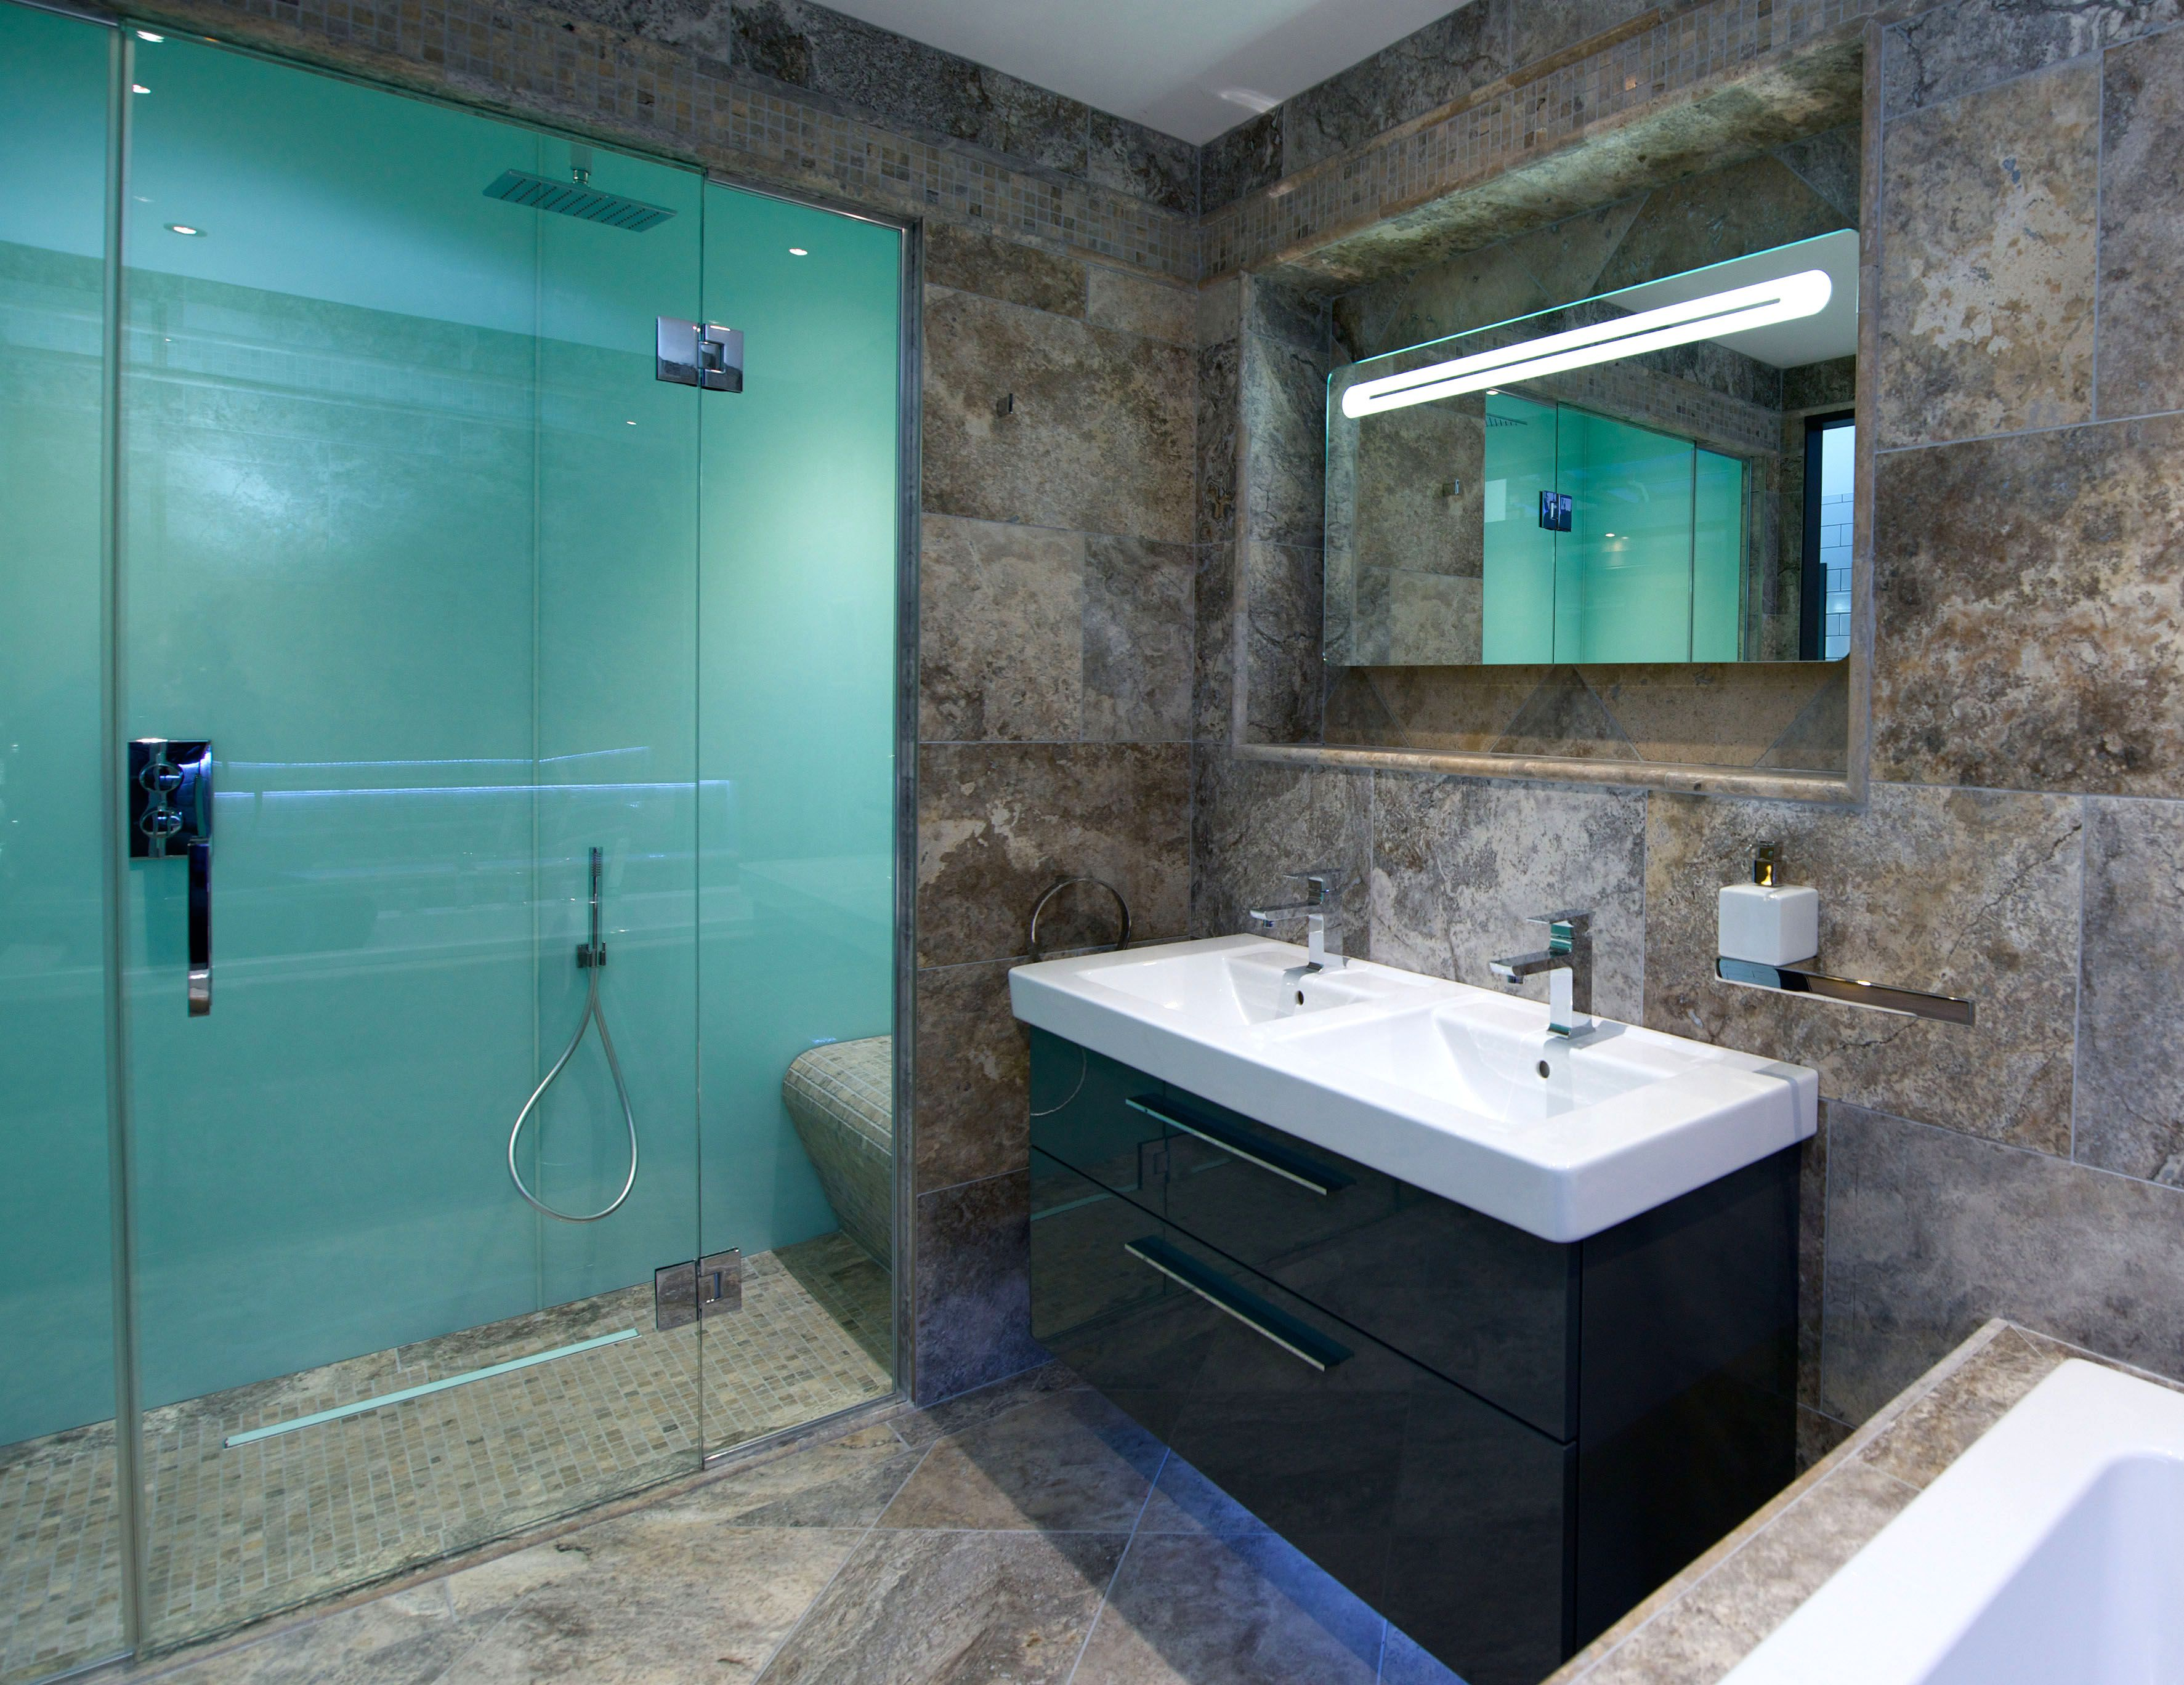 Amazing Lustrolite Is An Award Winning High Gloss Acrylic Wall Panel. Itu0027s The  Perfect Material To